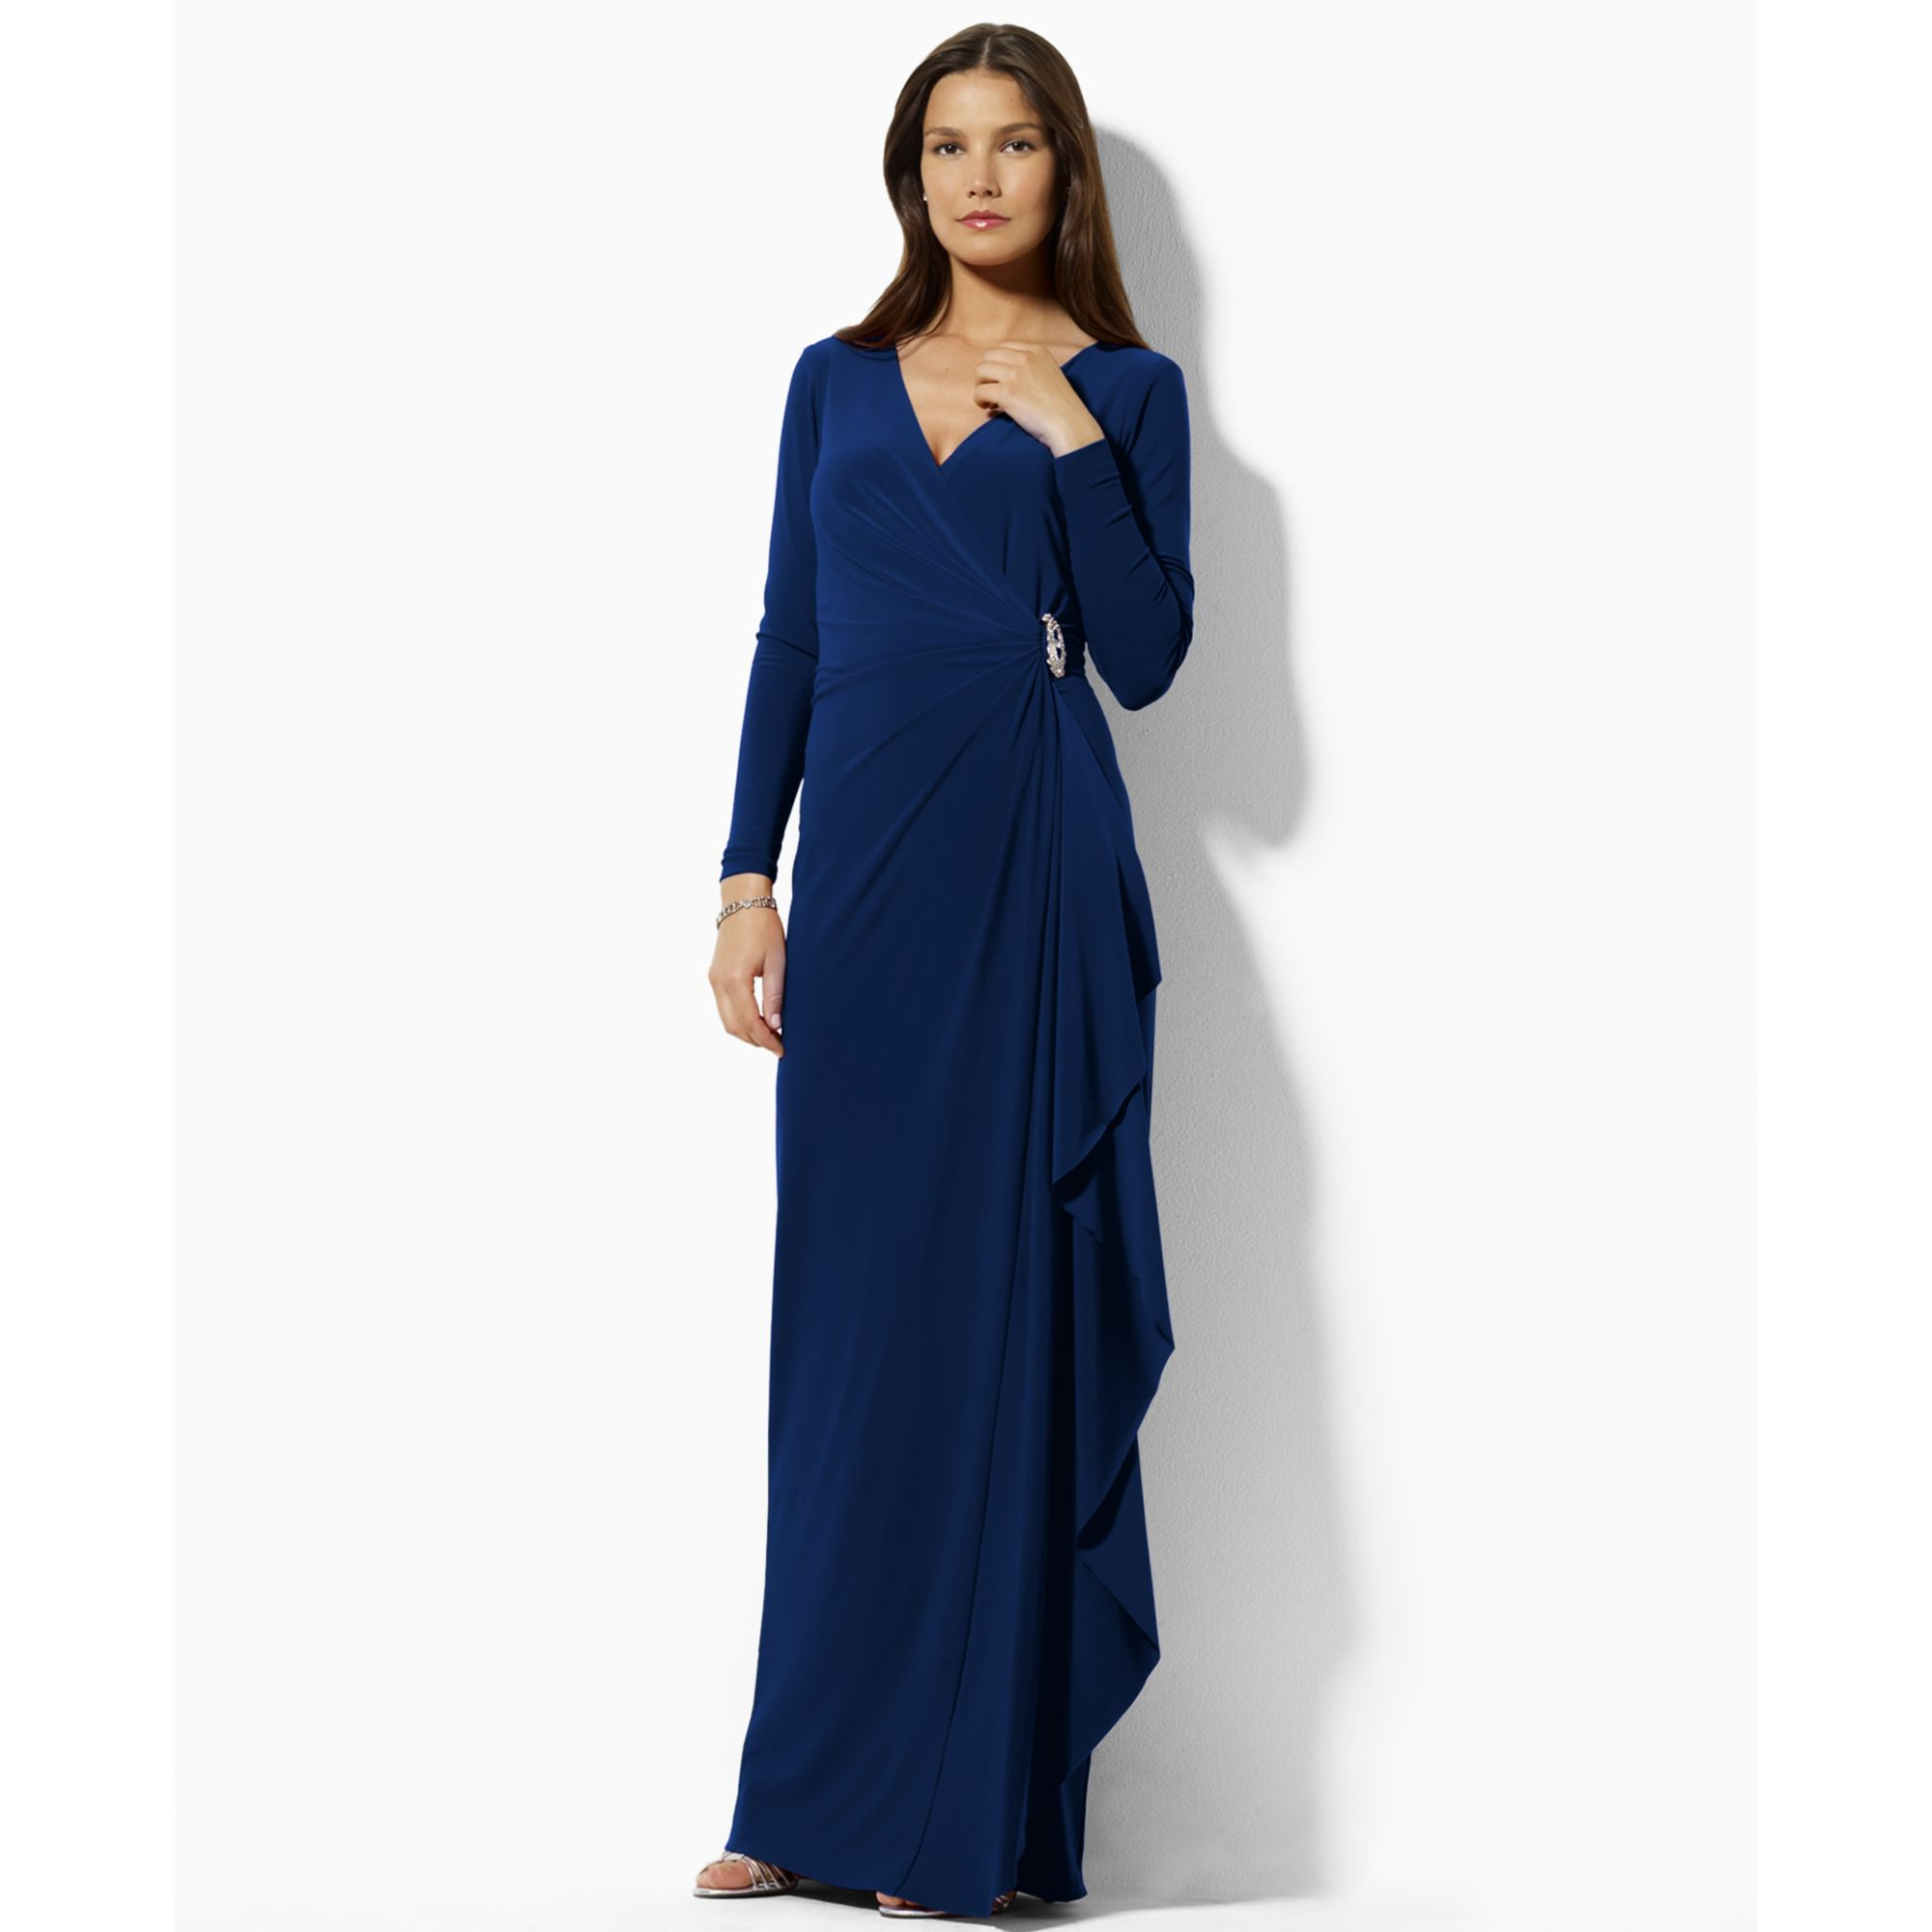 Lyst - Lauren By Ralph Lauren Lauren By Ralph Lauren Dress Long Sleeve Evening Gown In Blue